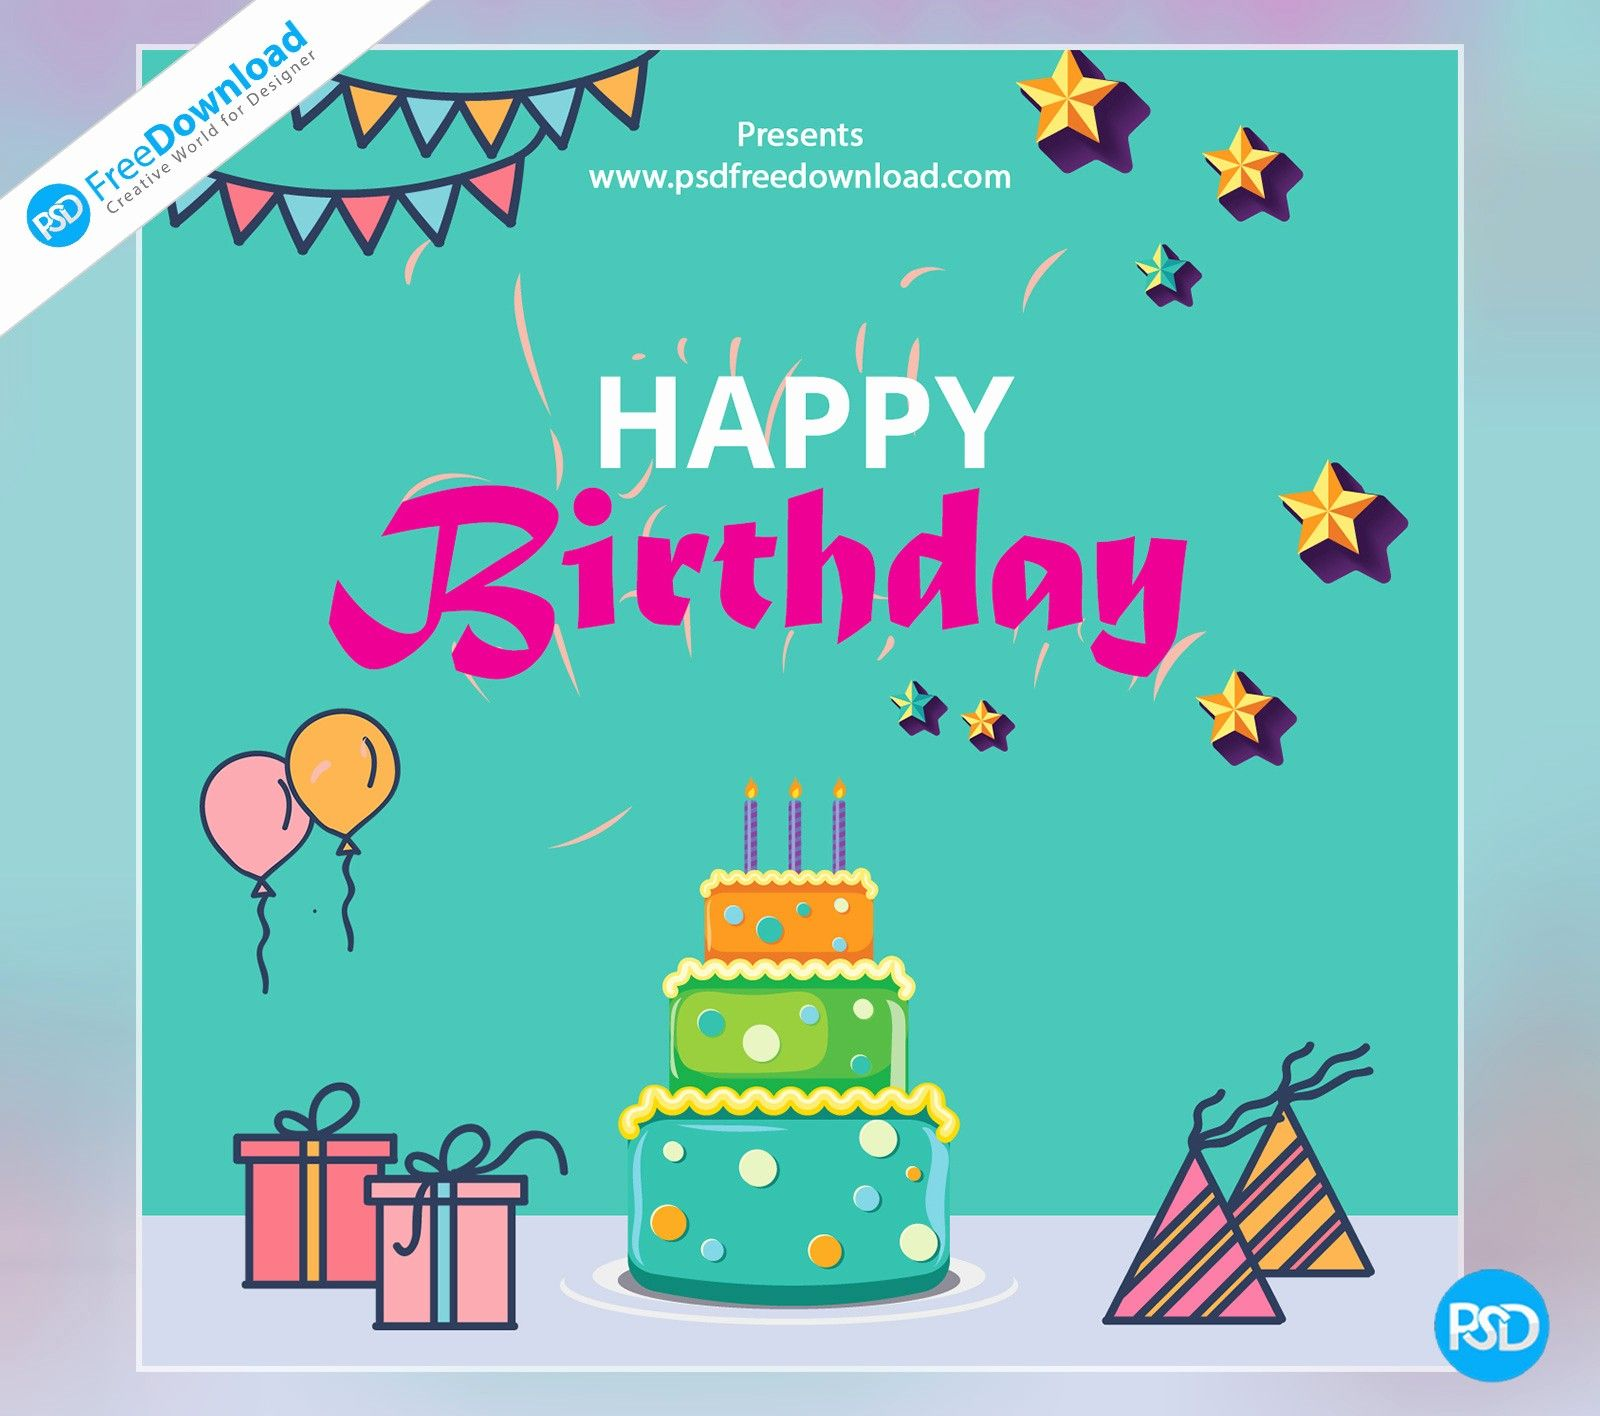 005 Marvelou Birthday Card Template Photoshop Highest Quality  Greeting Format 4x6 FreeFull